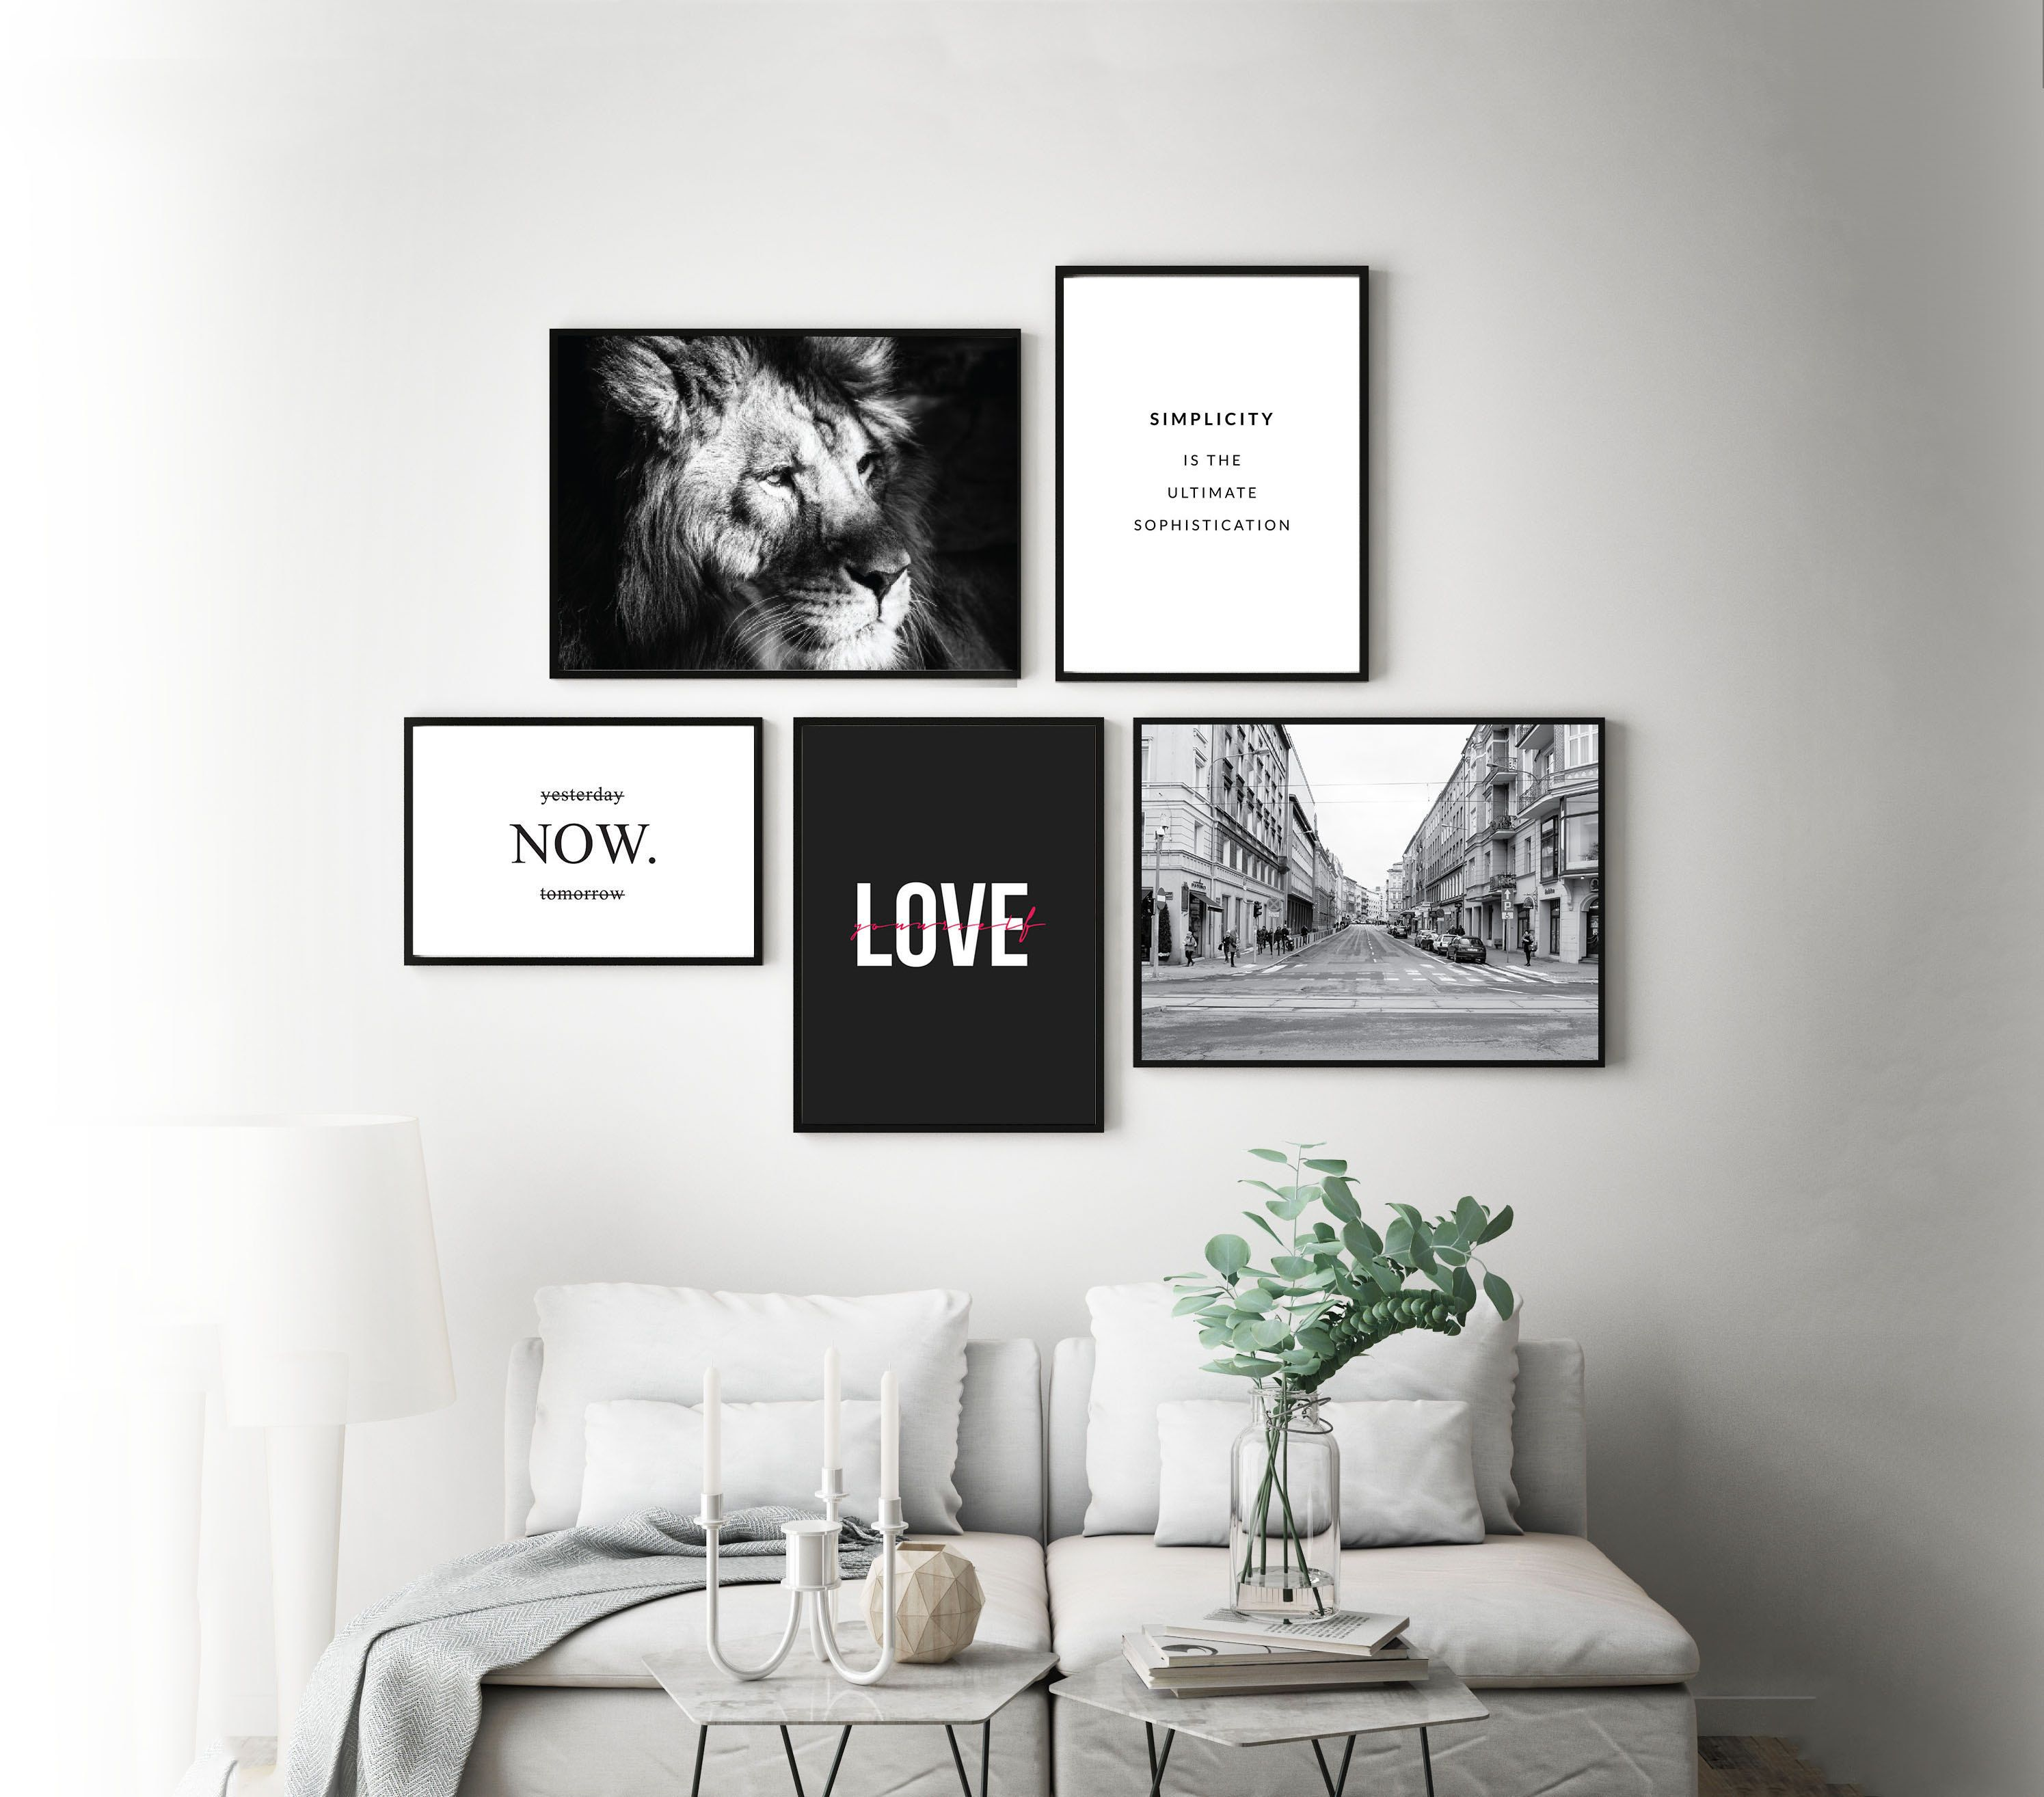 Set of 5 Posters Wall Decor Printable Wall Art Wall Decor Poster sets Digital Download photography Black and White Downloadable Art Gifts #deseniobilderwandwohnzimmer